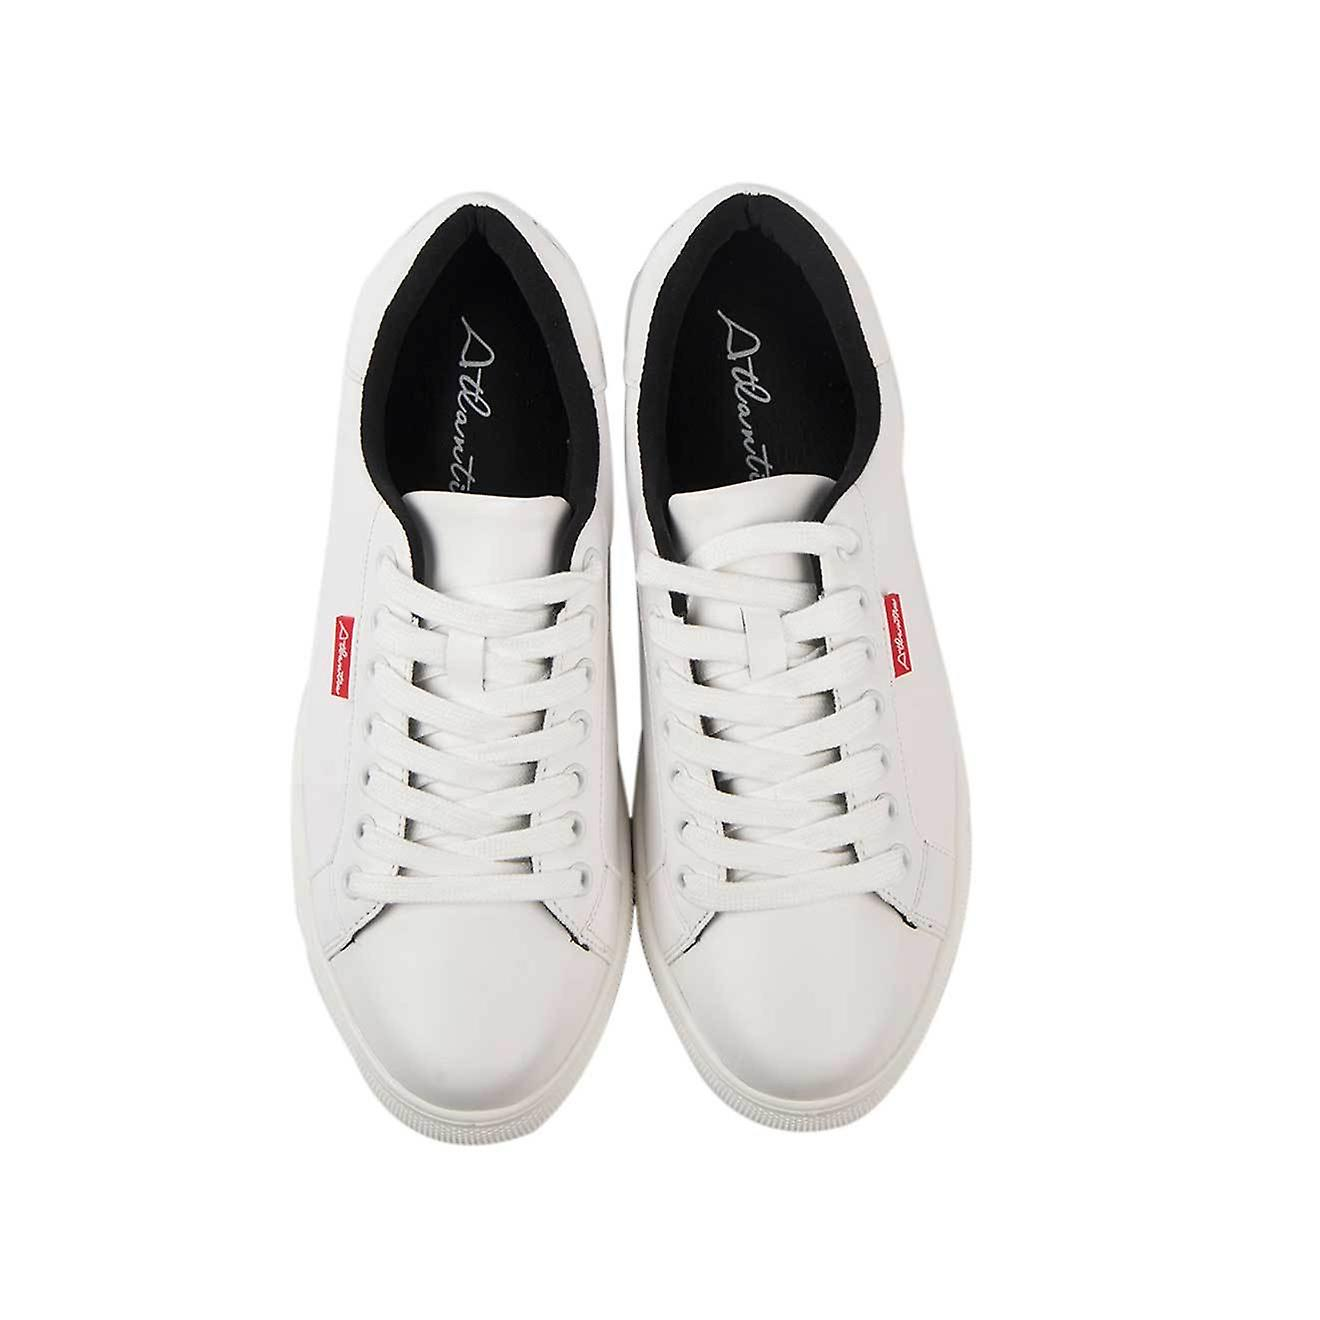 Original sin white sneakers